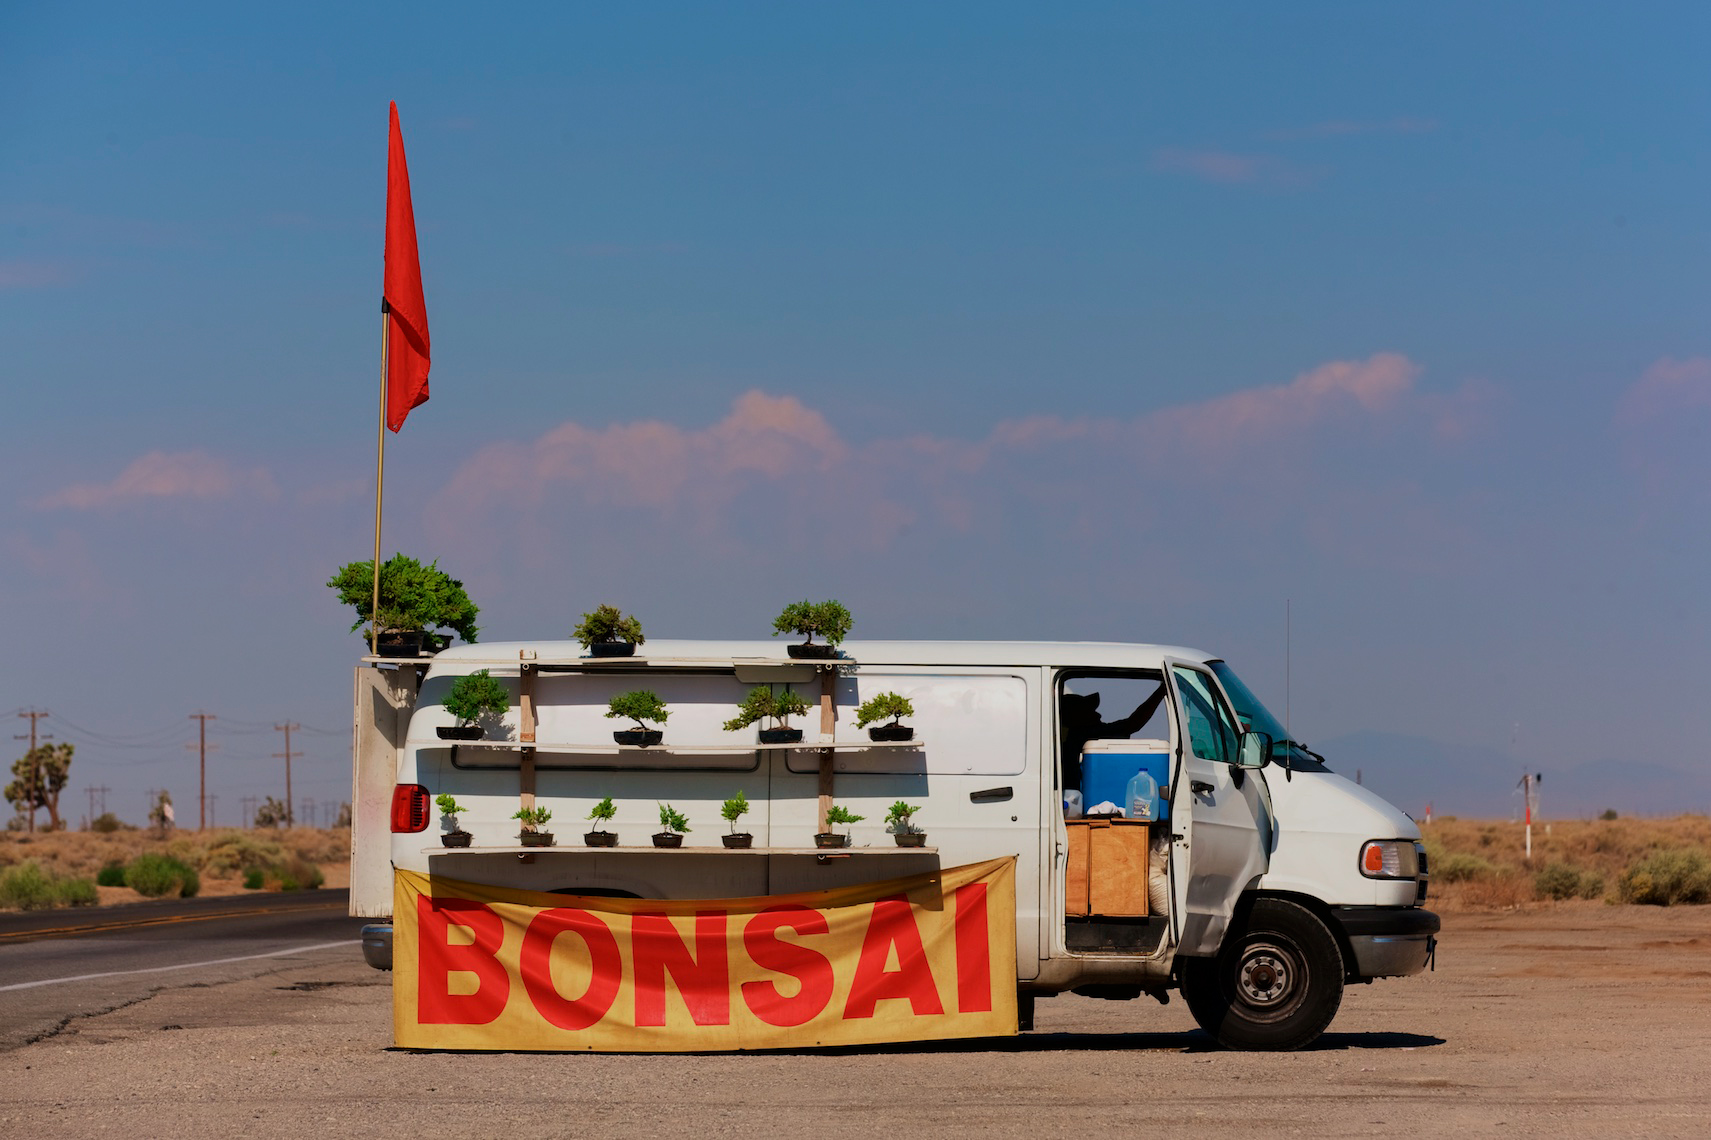 Roadside Bonsai, Bakersfield, CA